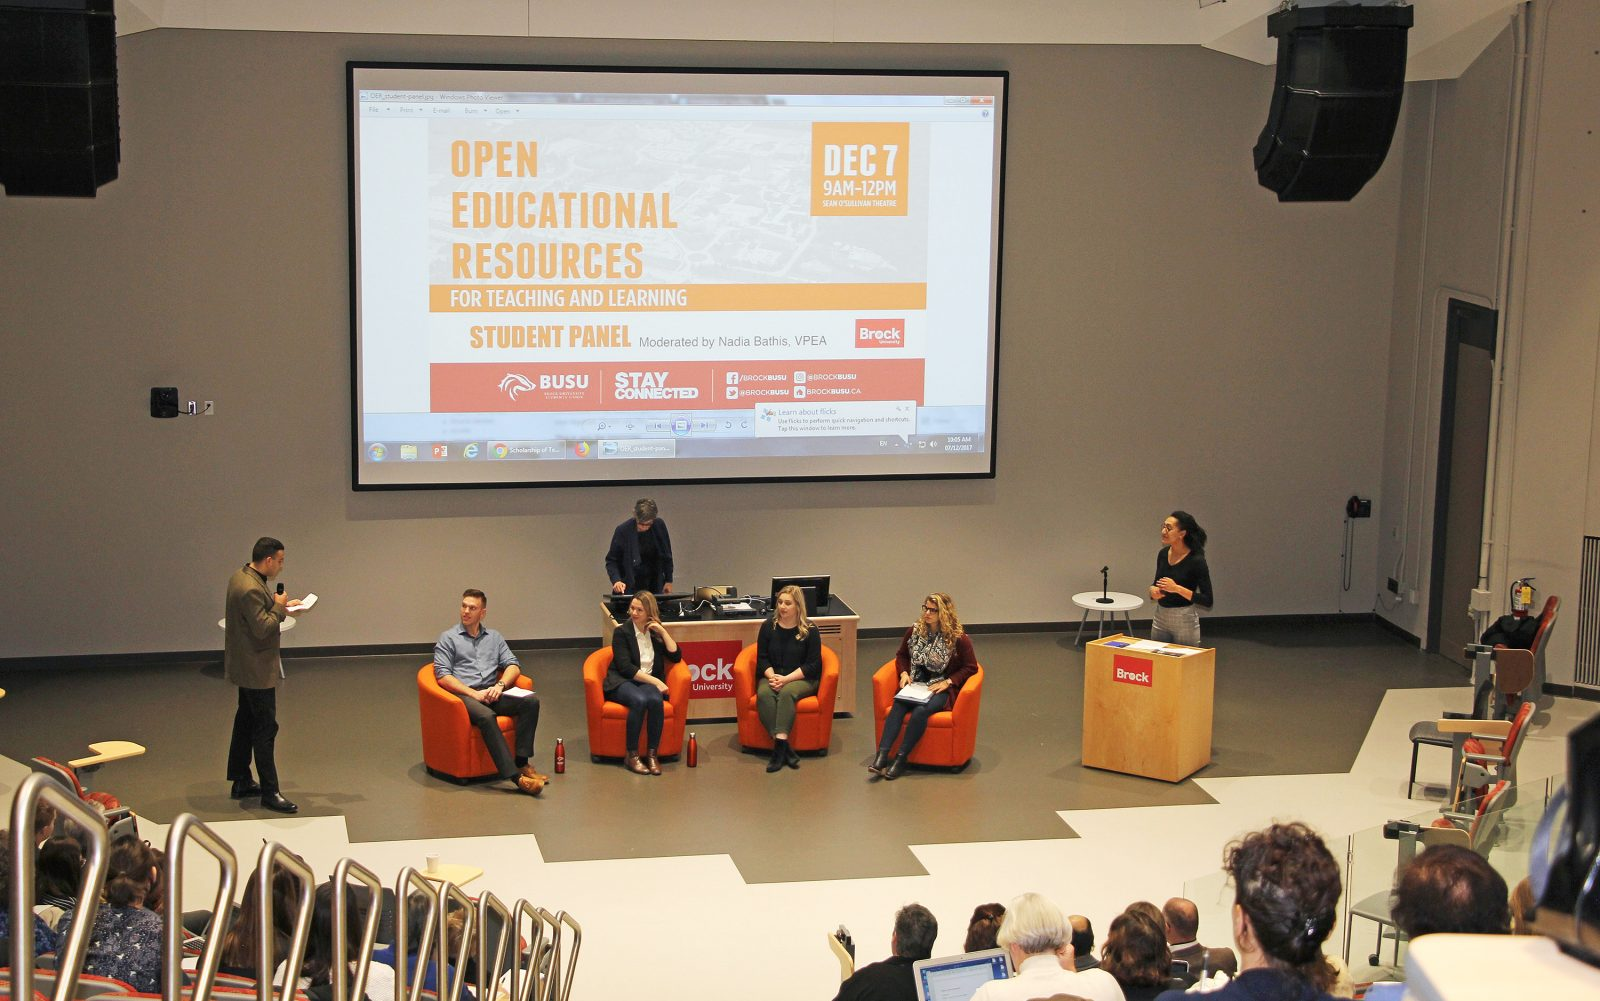 Open Educational Resources event